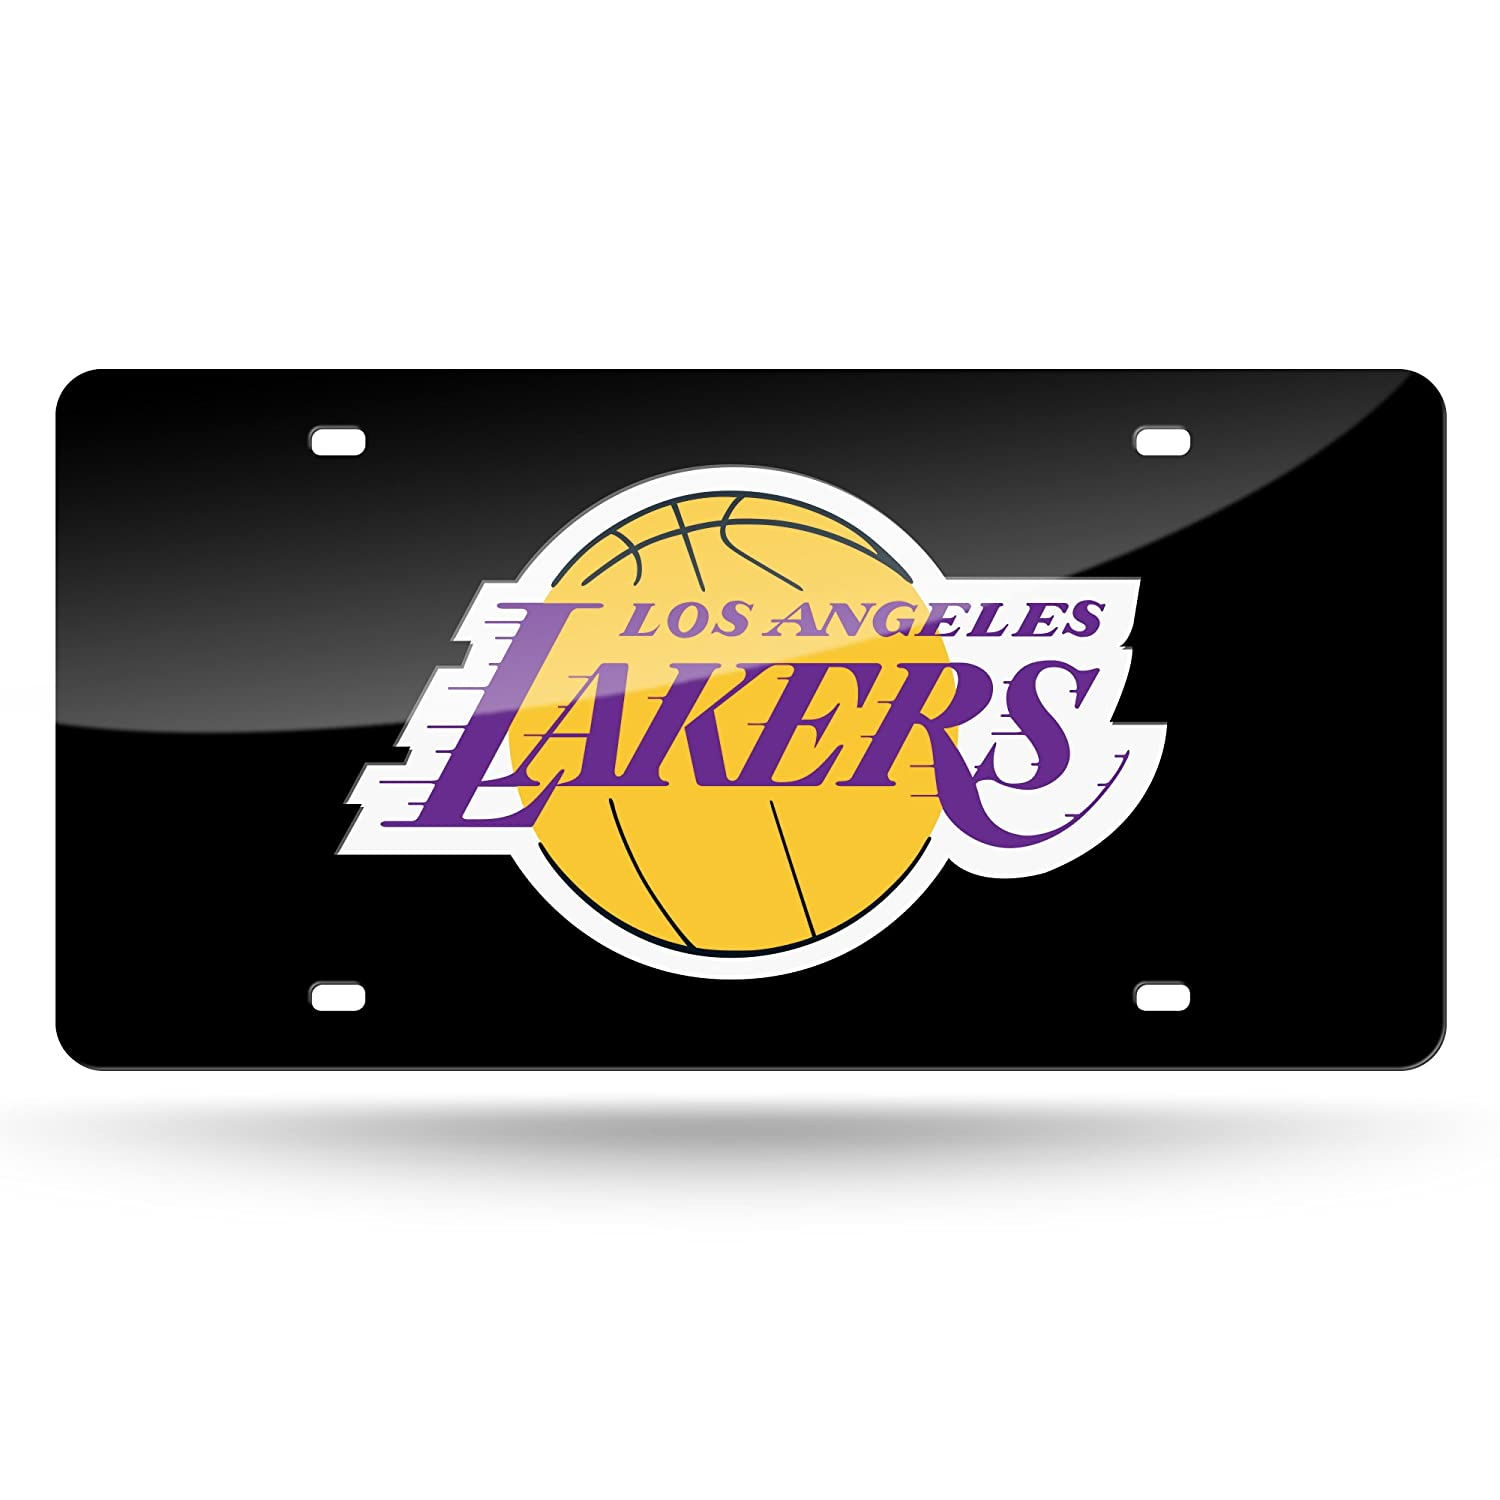 NBA #1 Fan Metal License Plate Tag White Rico Industries Inc LZC77001